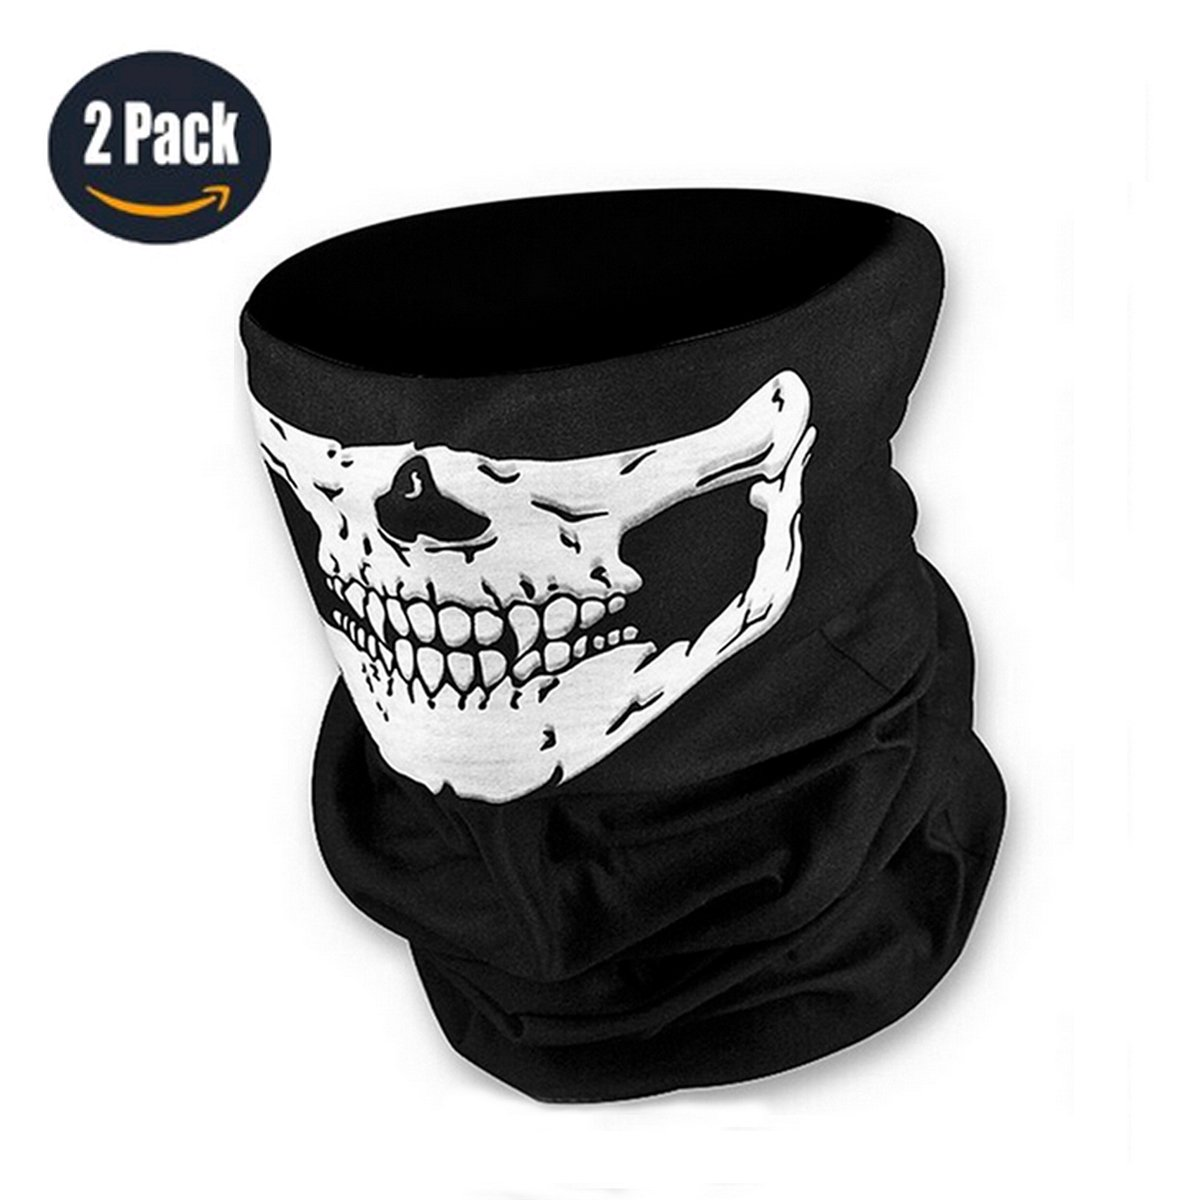 12-in-1 Versatile Skull Ghost Military Motorcycle Half Face Mask Breathable Quick Dry Tactical Balaclava For Out Riding Hunting Warm Neck Gaiter (2 pcak) Walking Man